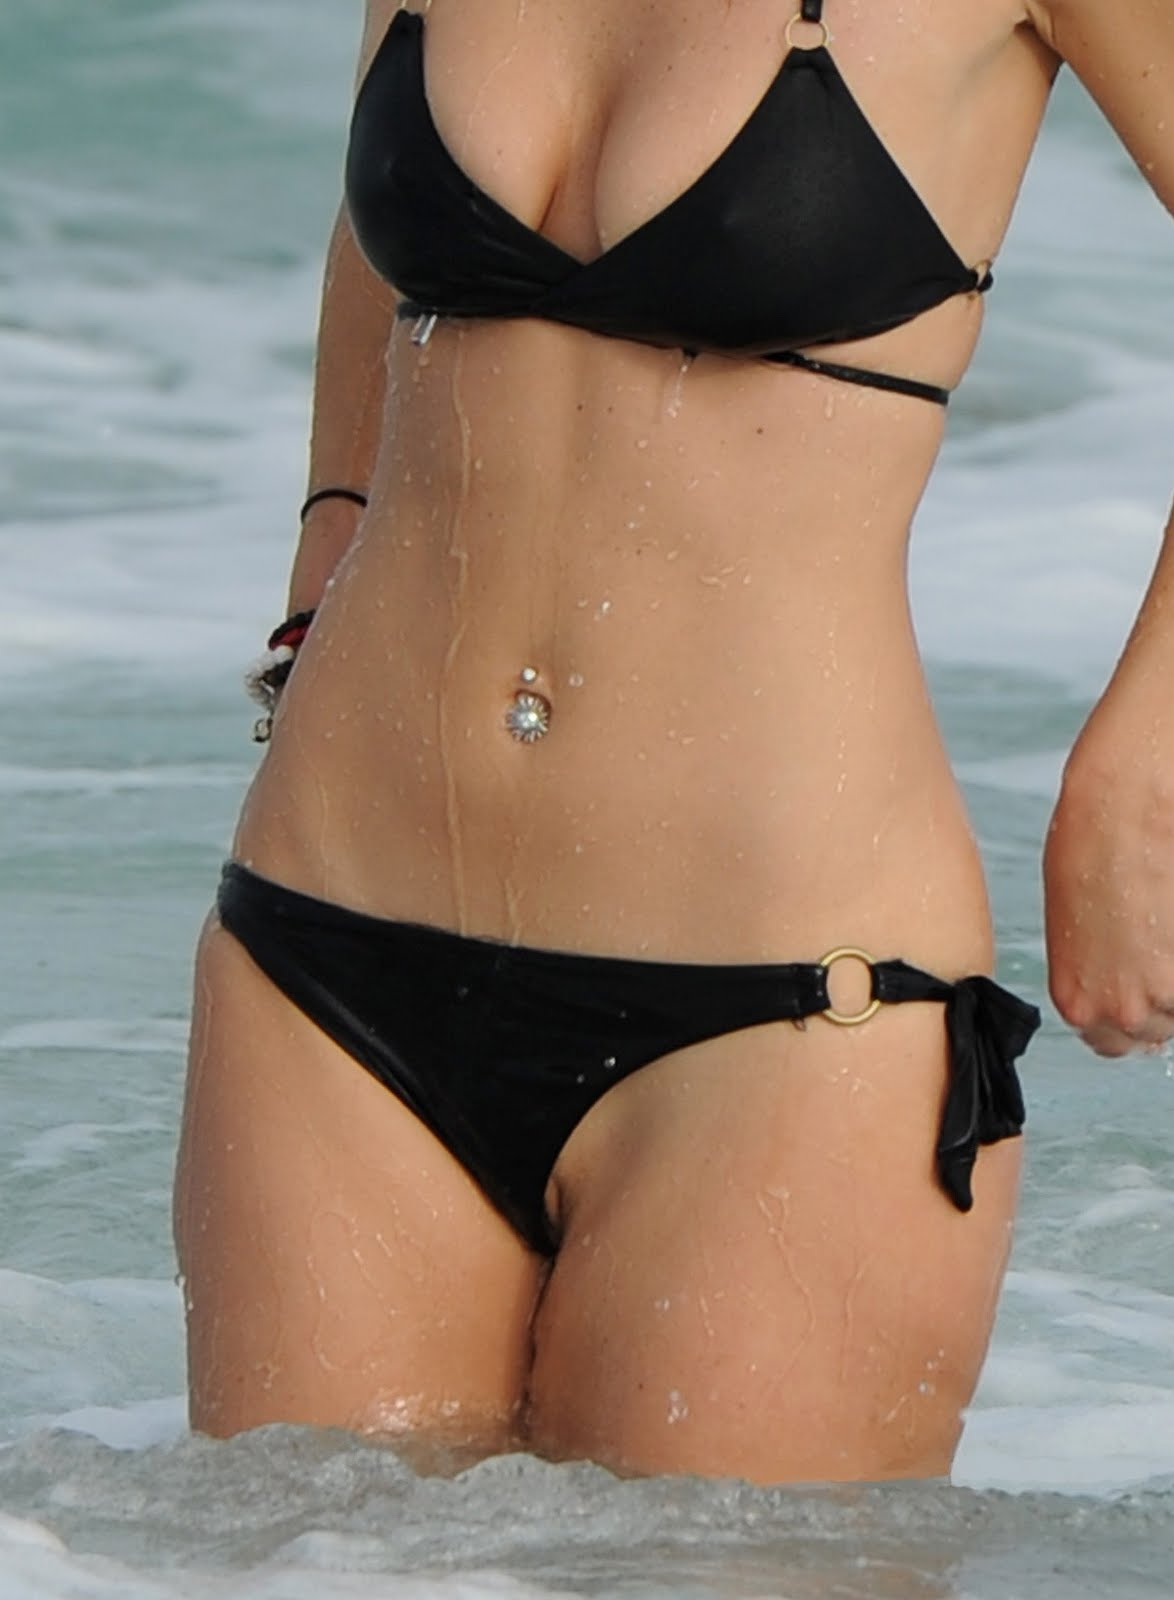 bikini bottom lip slip - photo #3